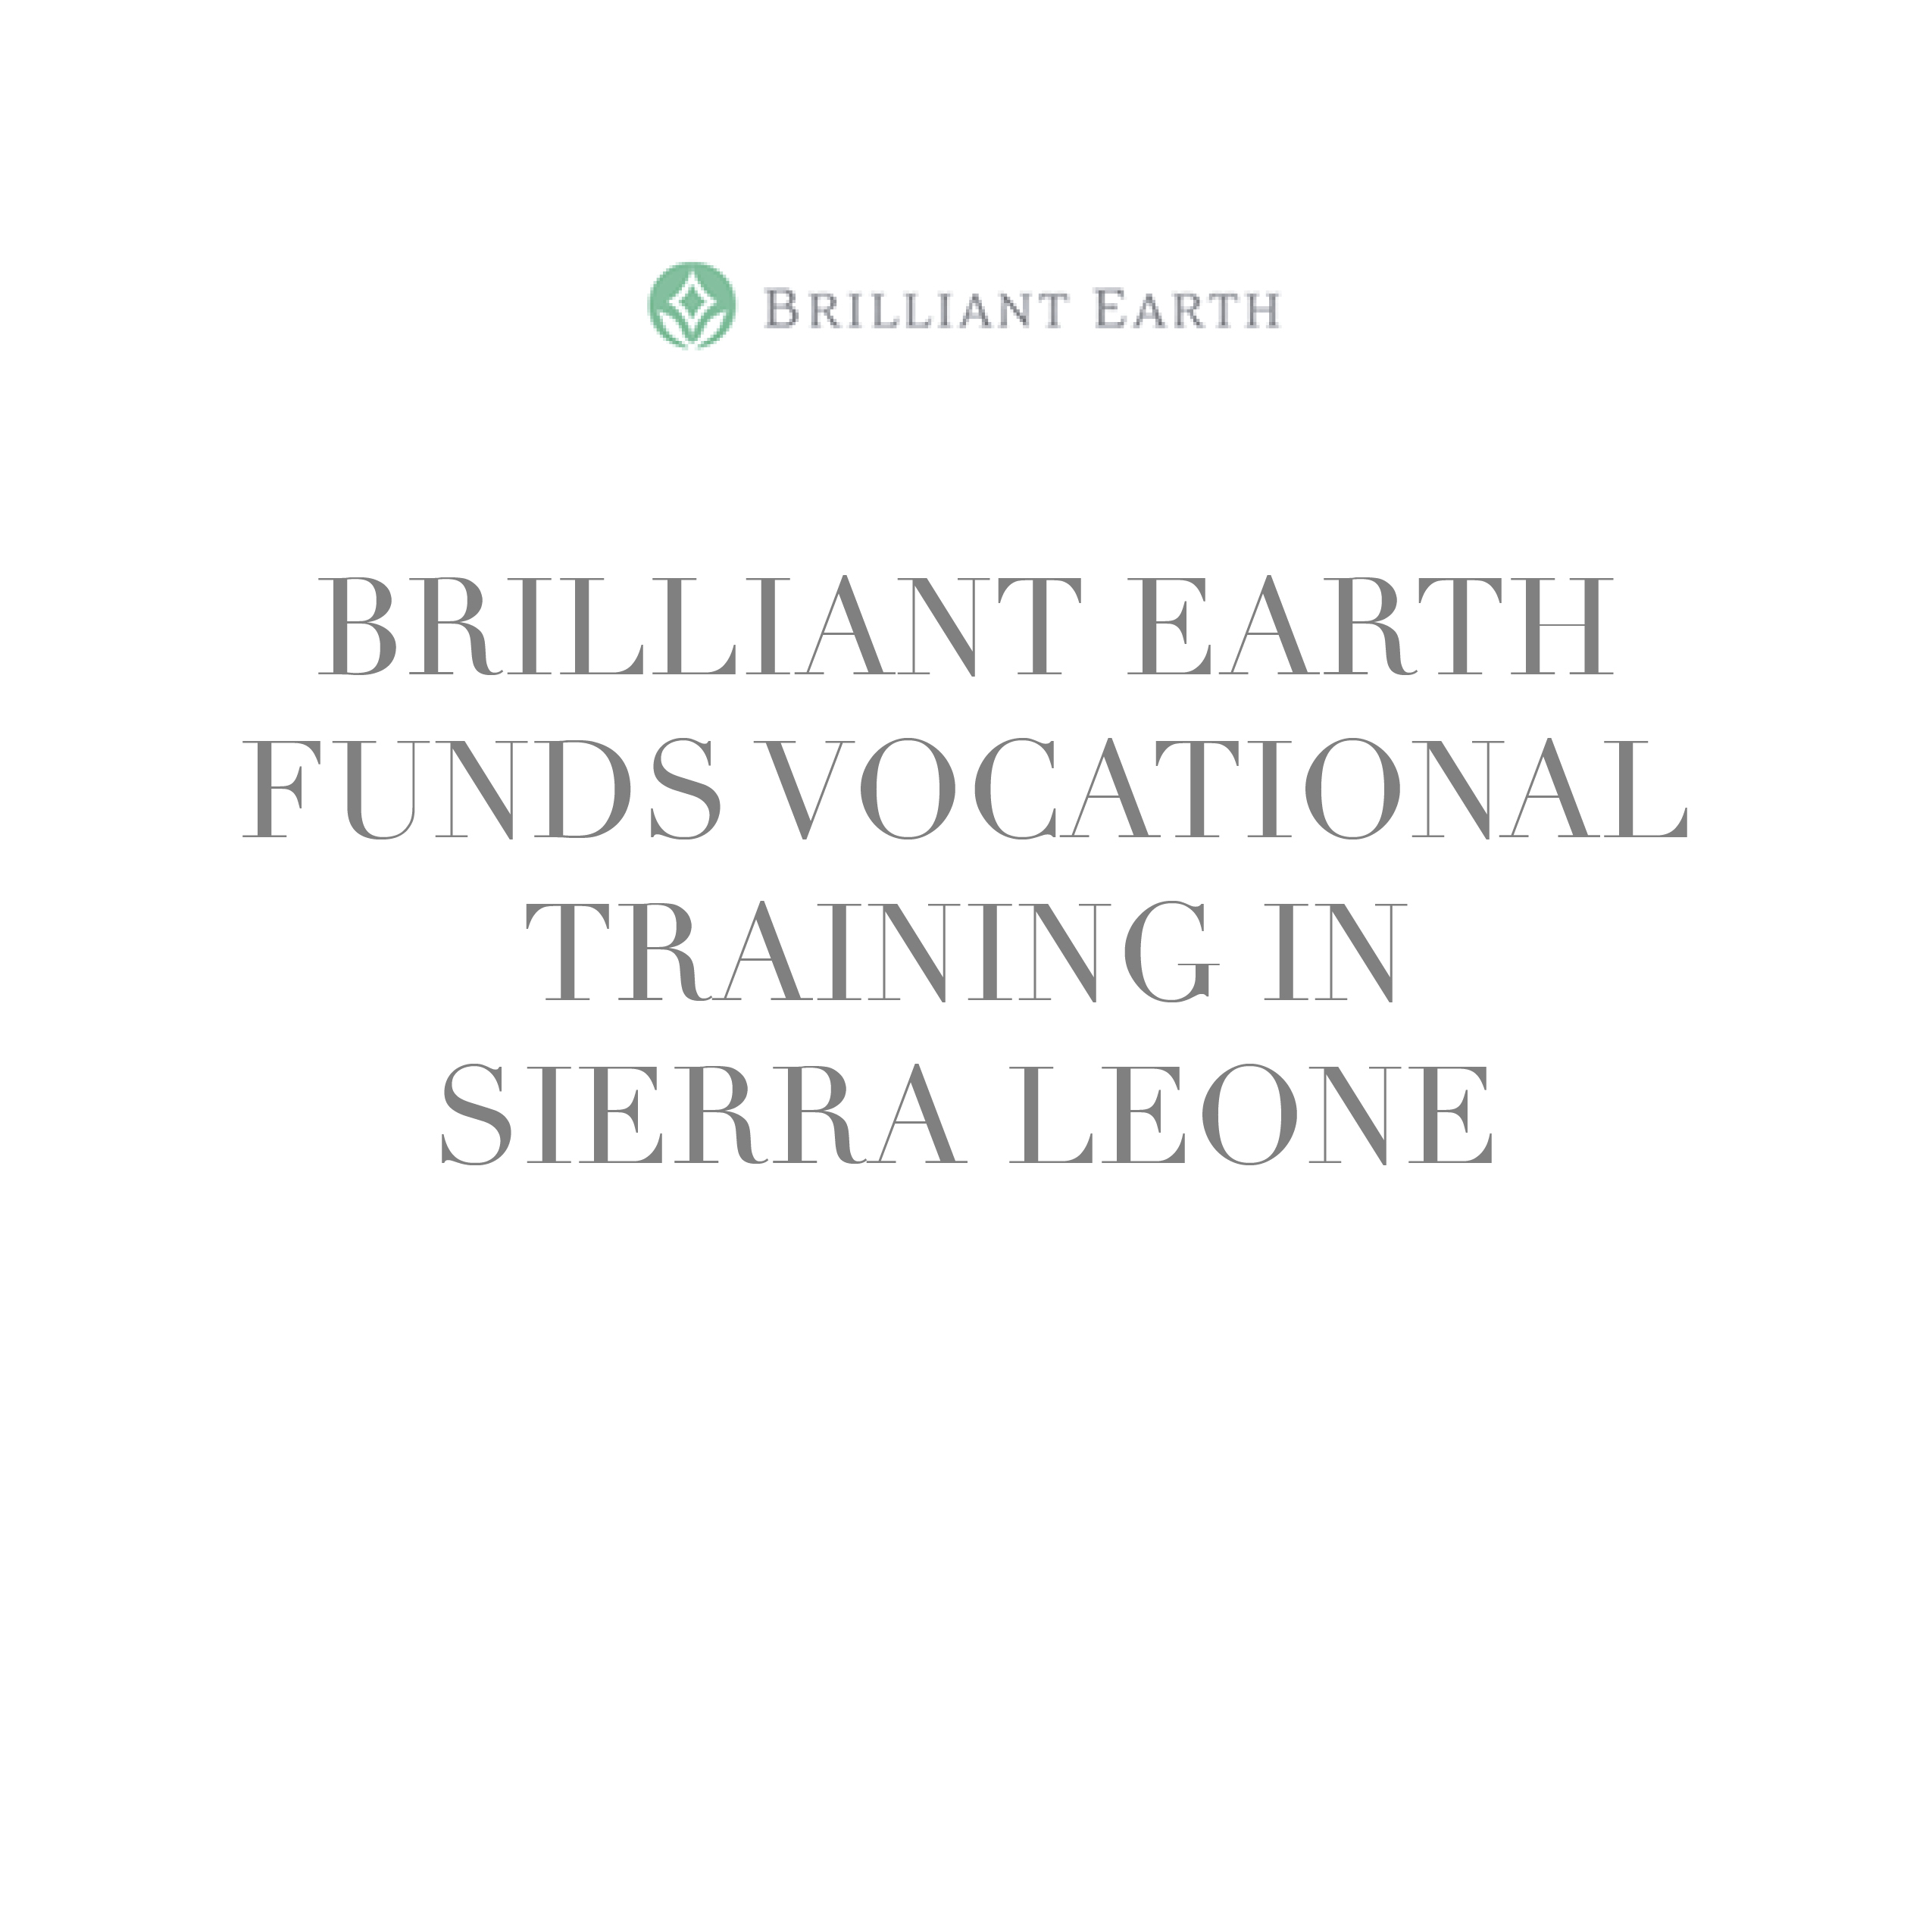 Brilliant Earth Funds Vocational Training in Sierra Leone